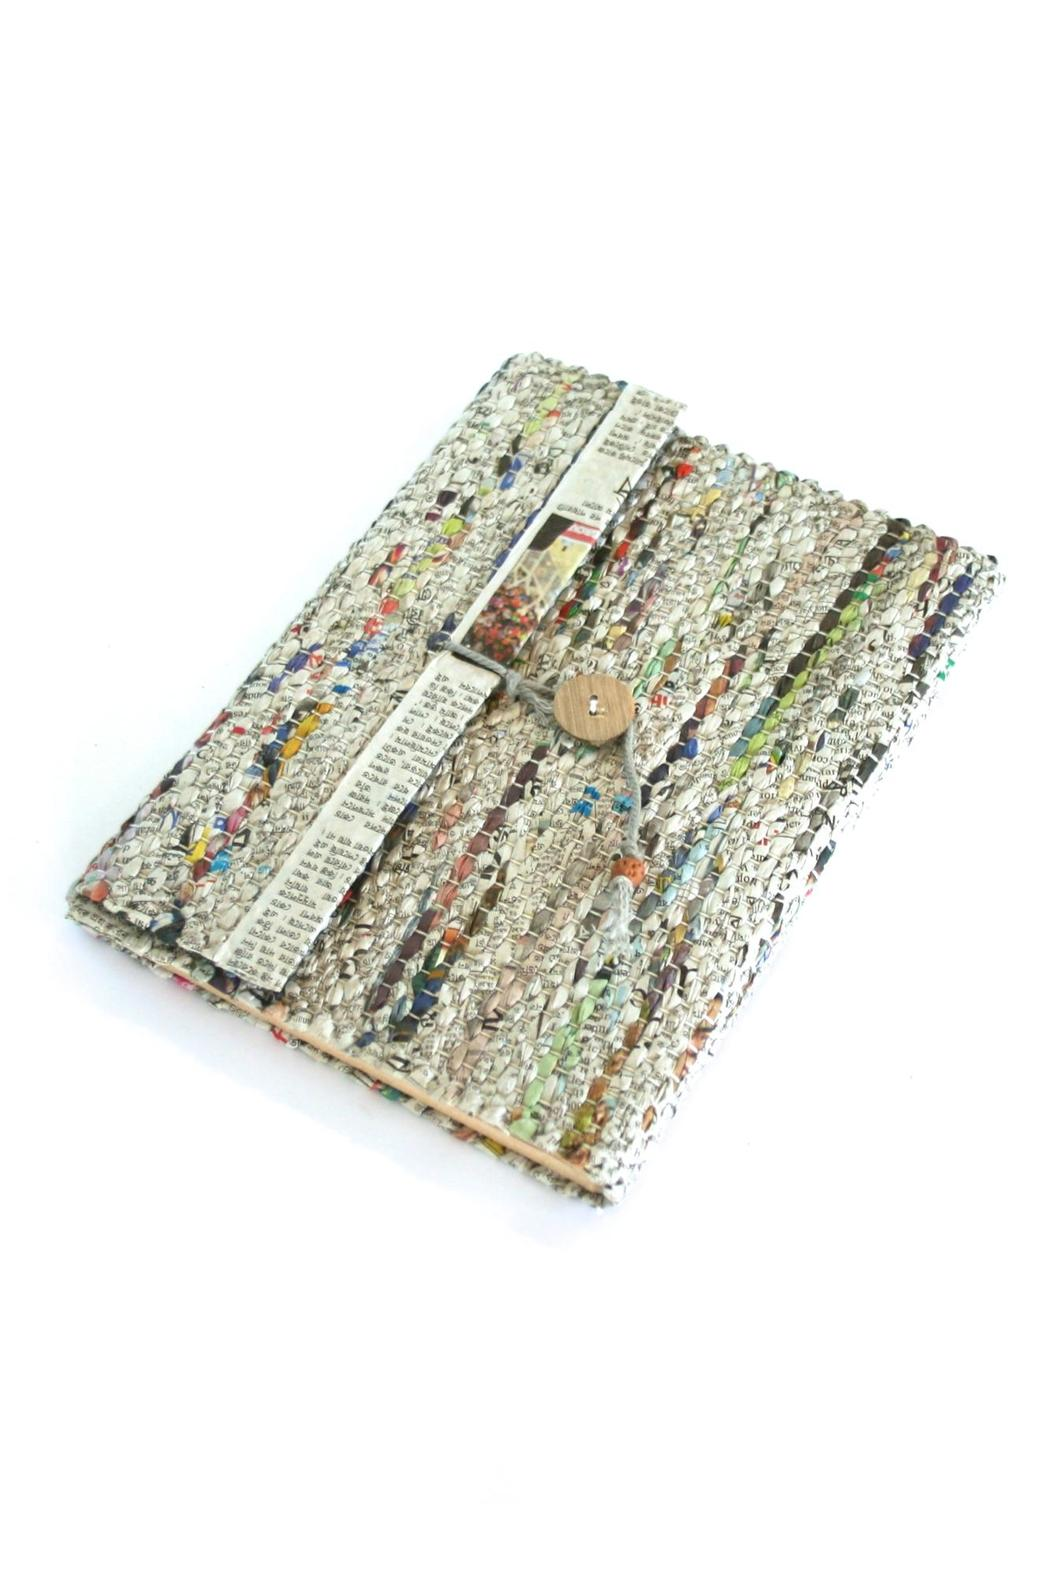 Fair & Square Imports Recycled Newspaper Journal - Main Image